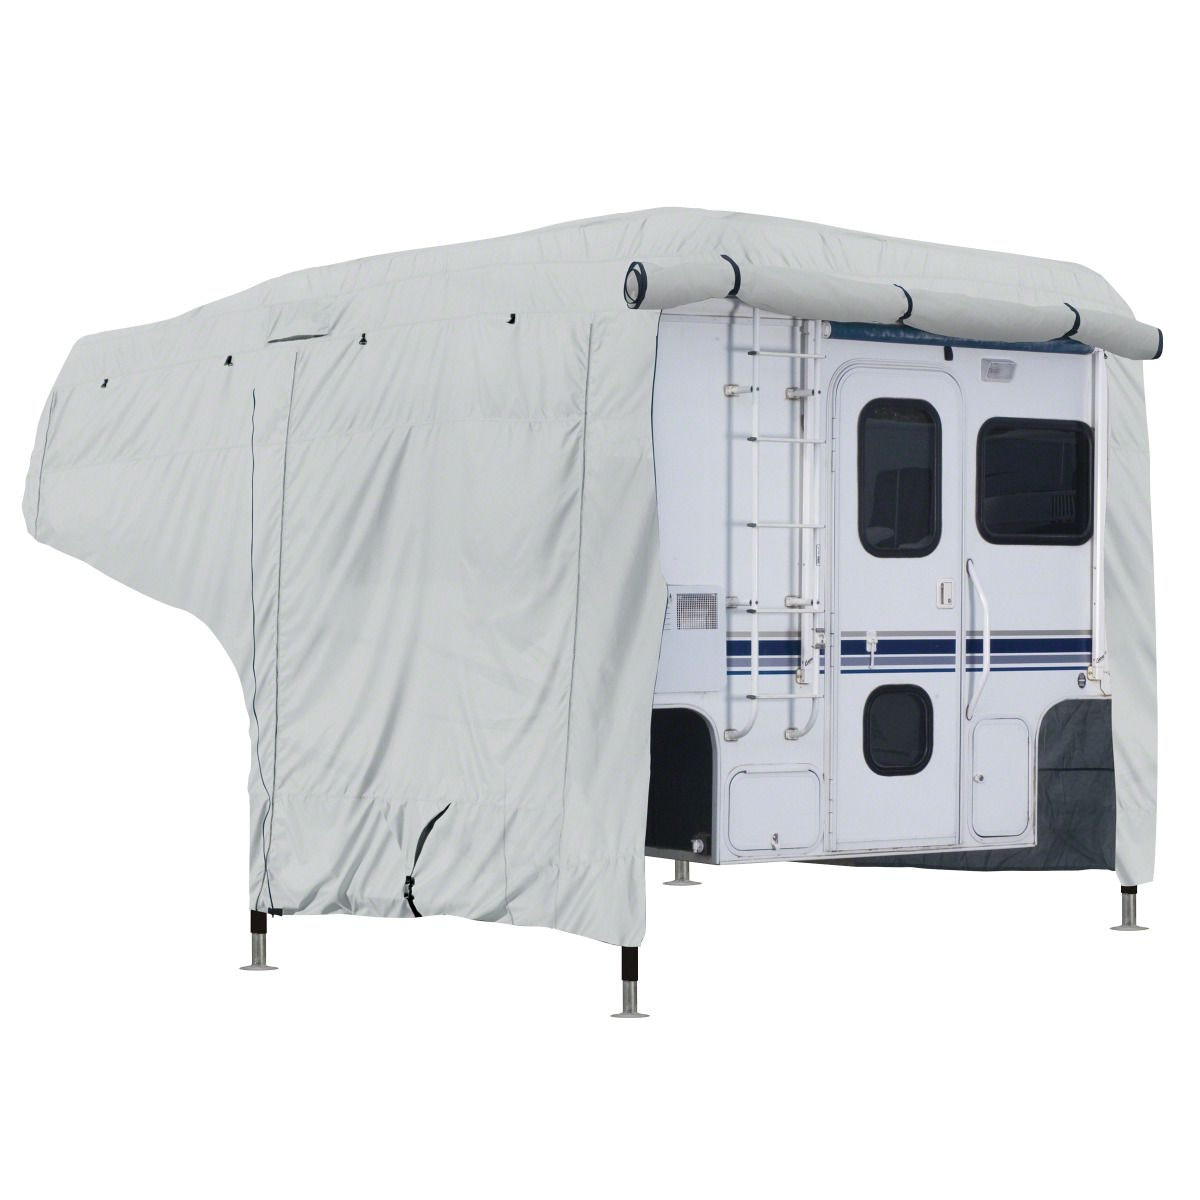 Product Image for Classic Classic PermaPRO 8' - 10' Slide-in Truck Camper RV Cover Rv